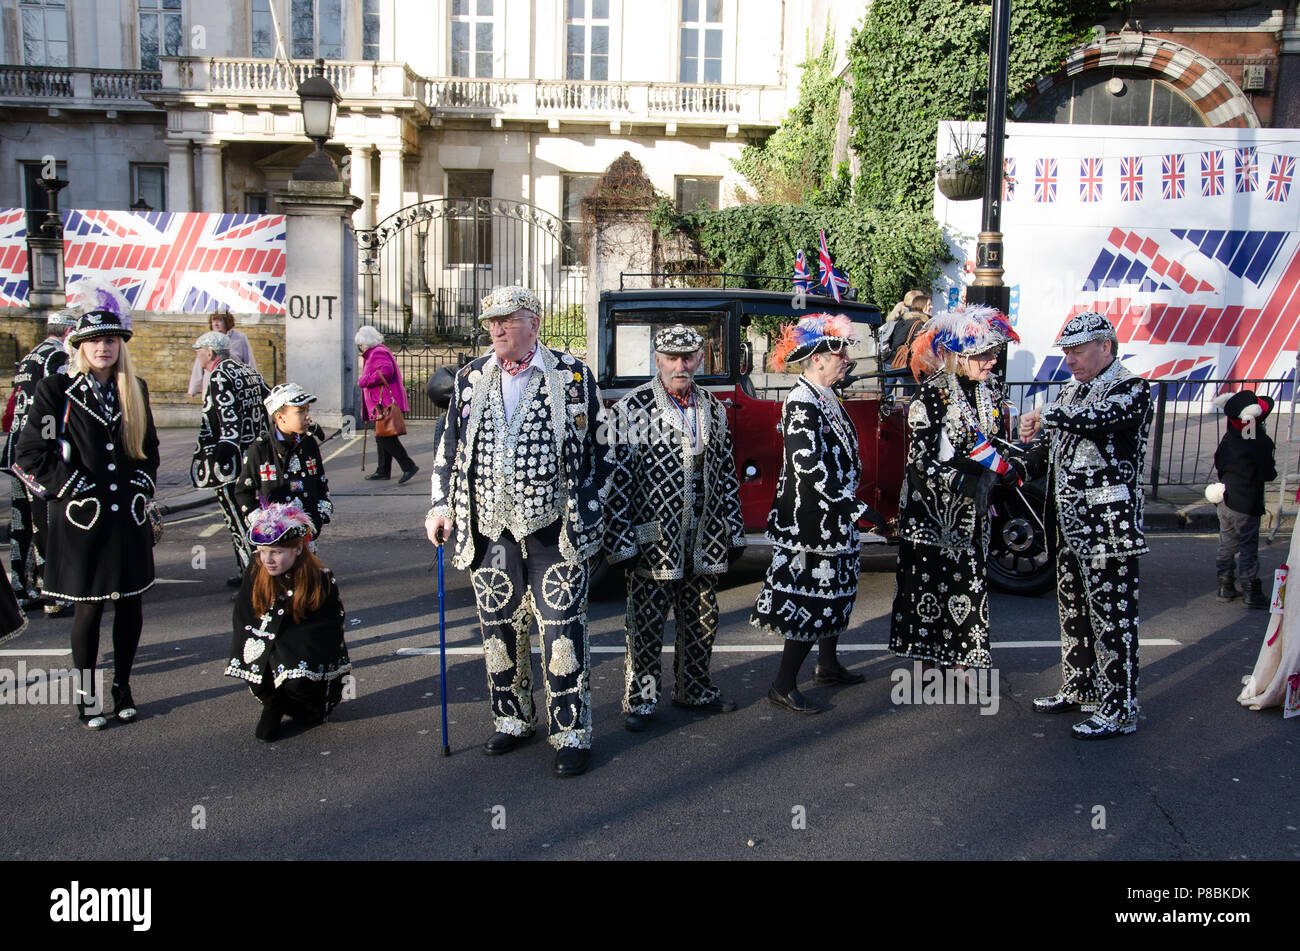 New Years Day parade, London 2013 - Stock Image